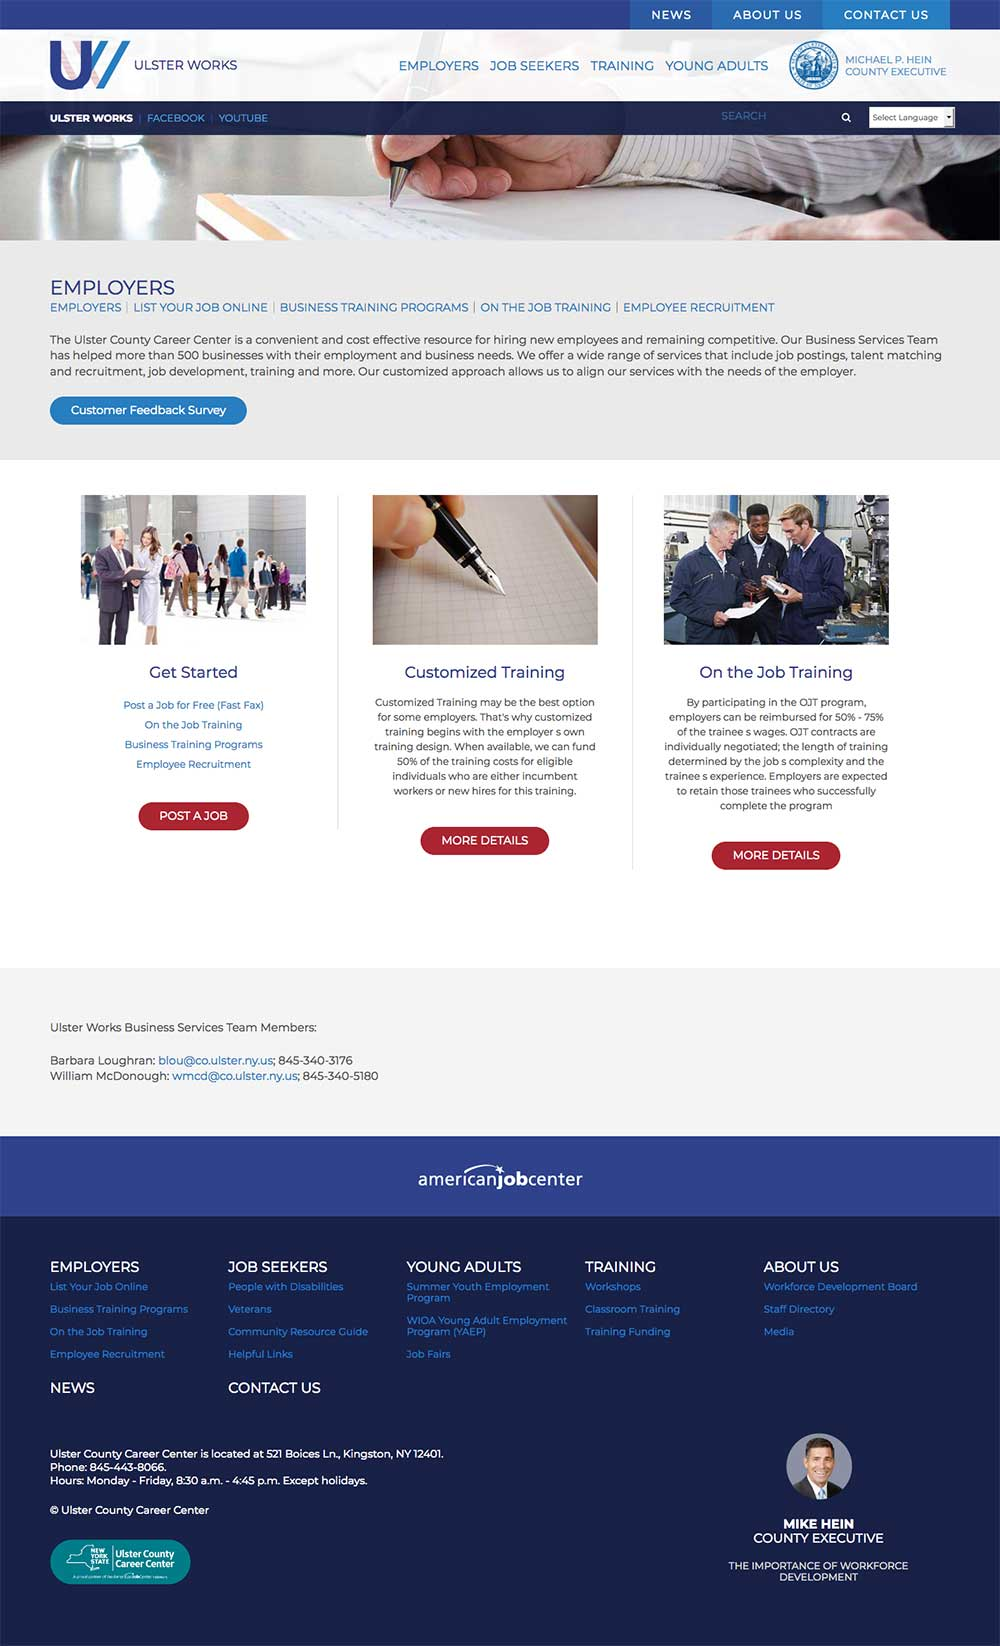 Ulster Works Employer Page